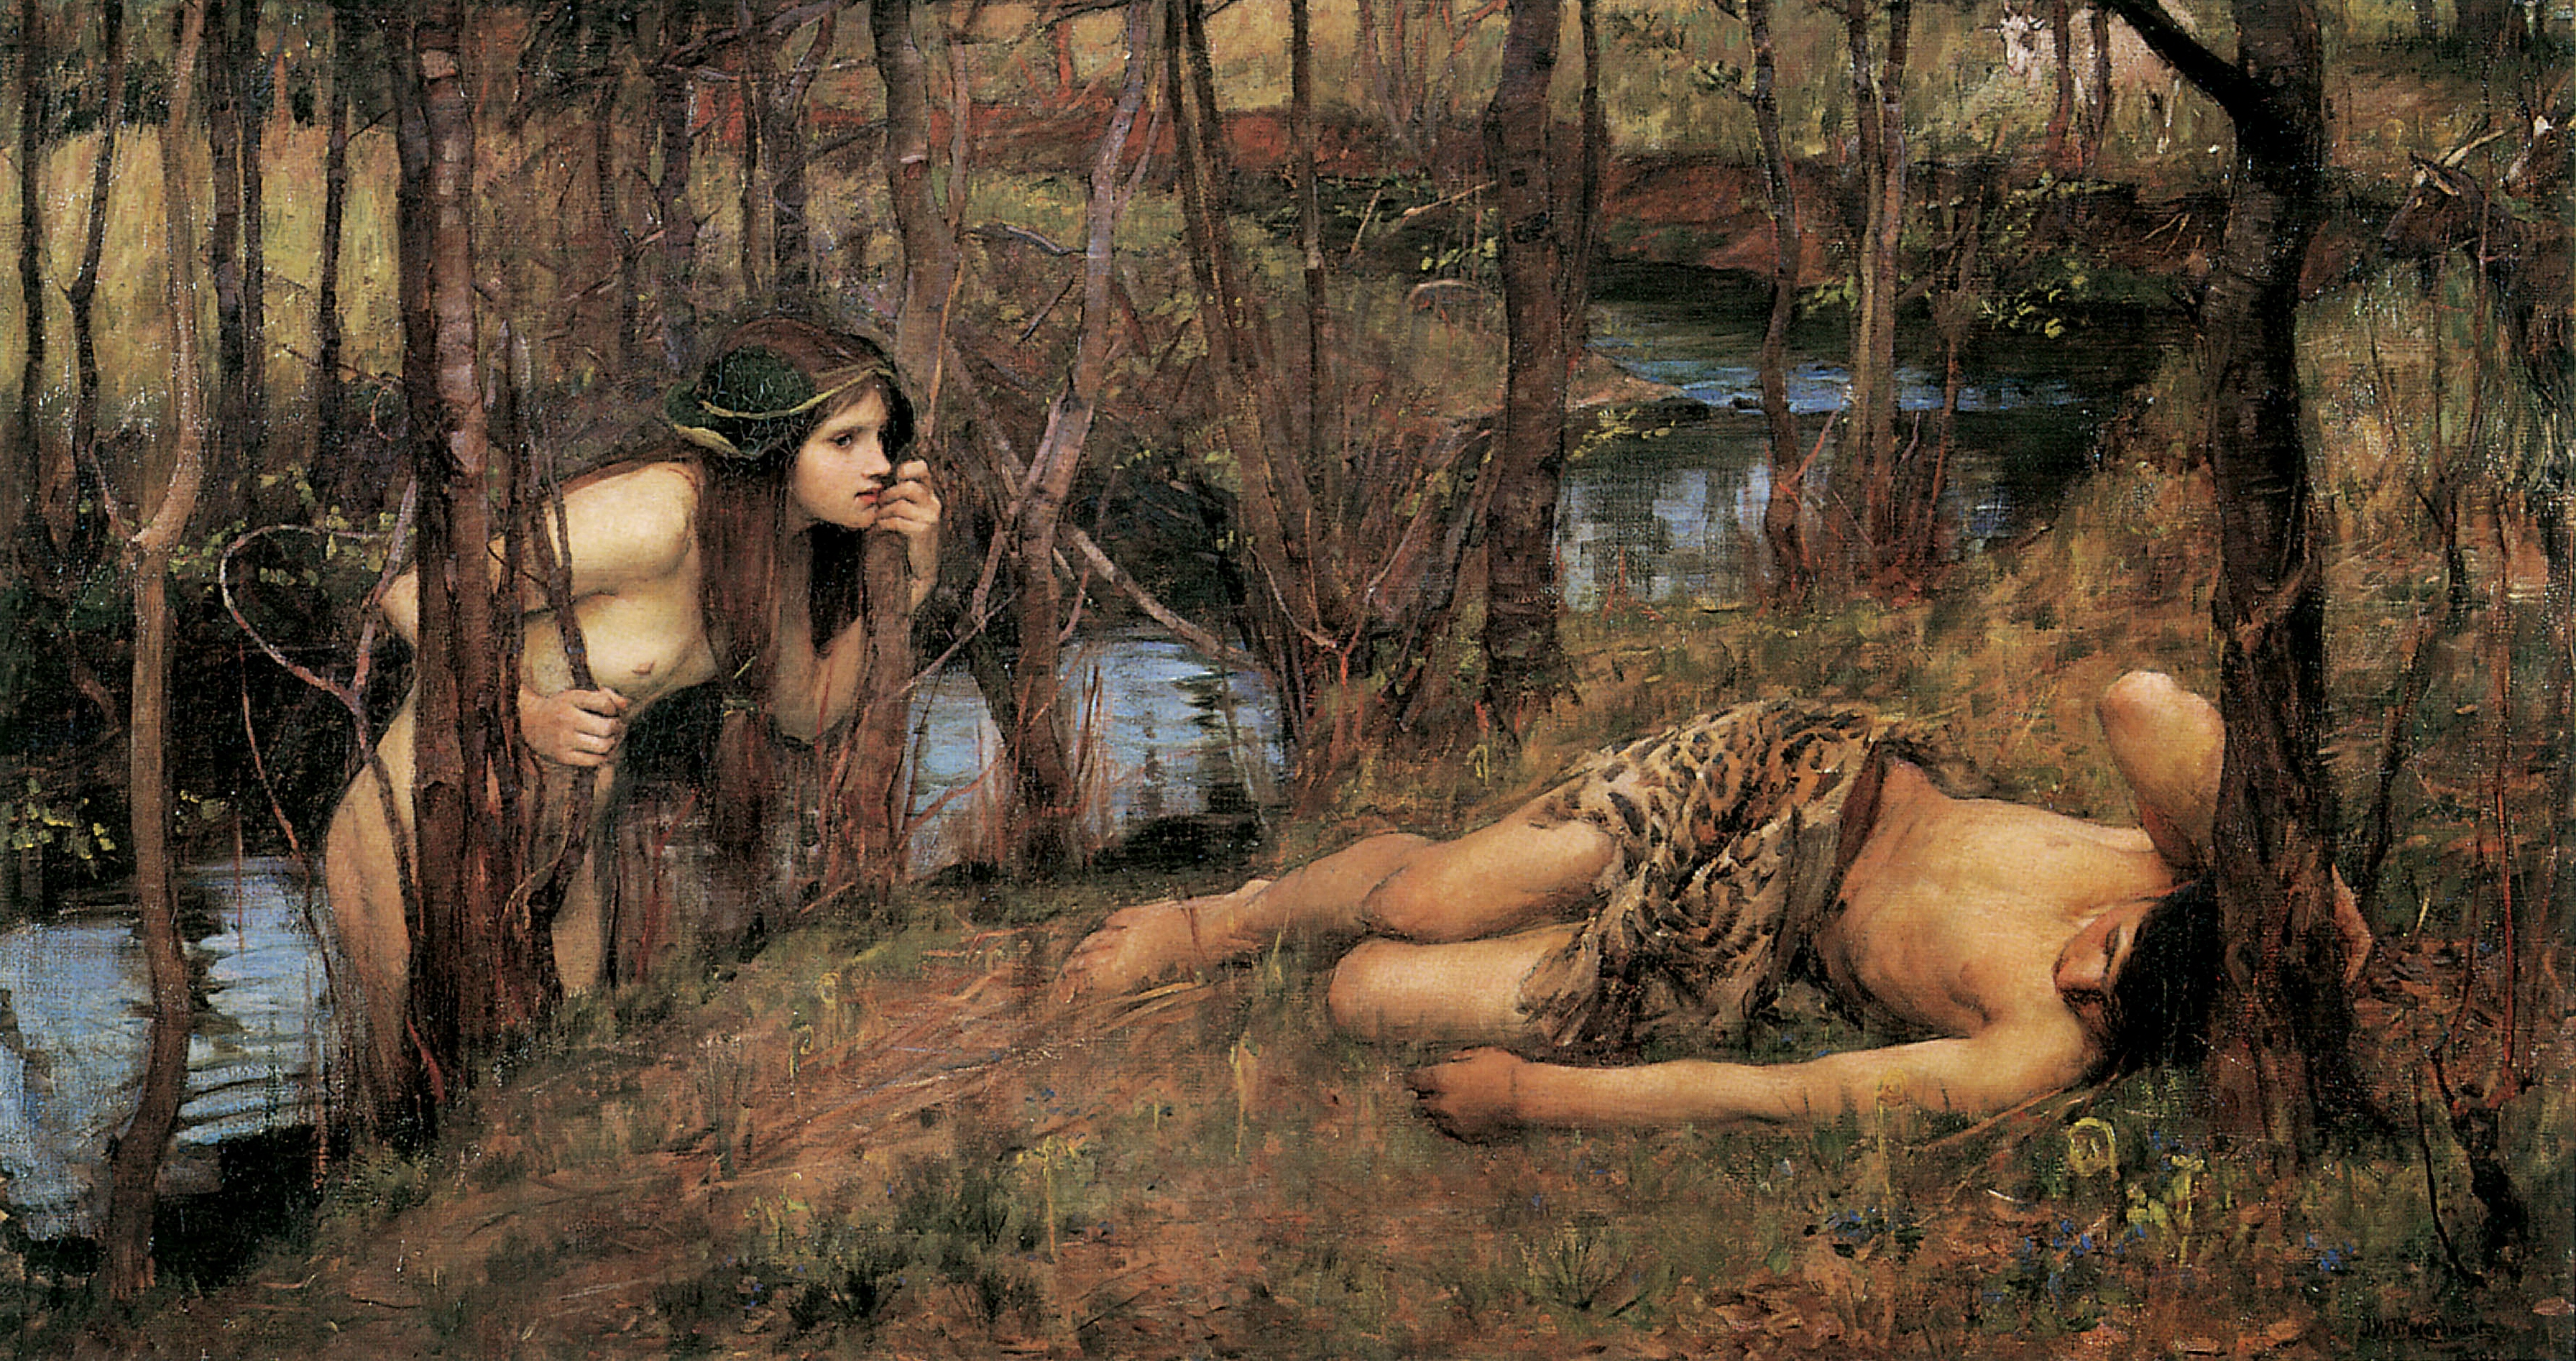 a-naiad-waterhouse-1893.jpg